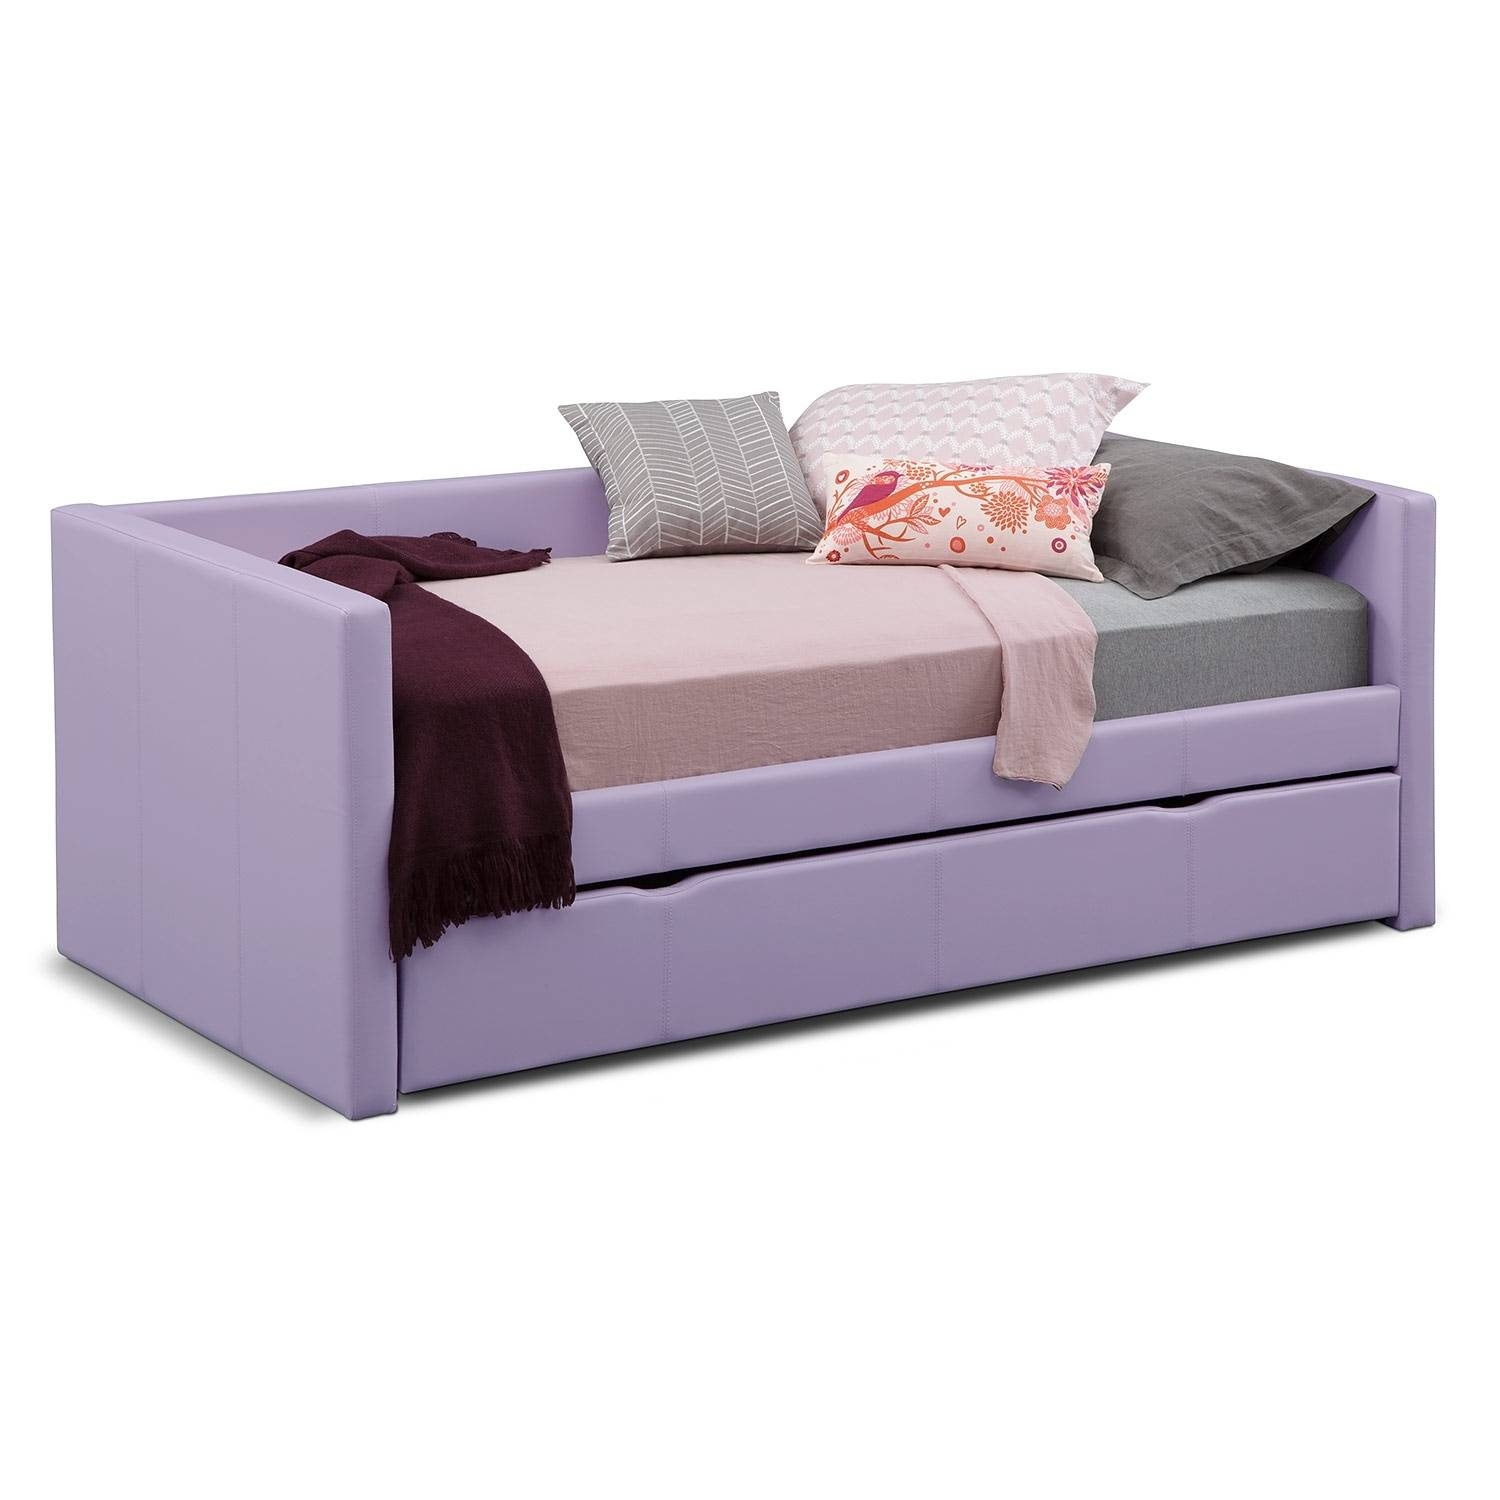 Daybeds & Trundle Beds | Bedroom Furniture | Value City Furniture intended for Sofa Day Beds (Image 14 of 30)